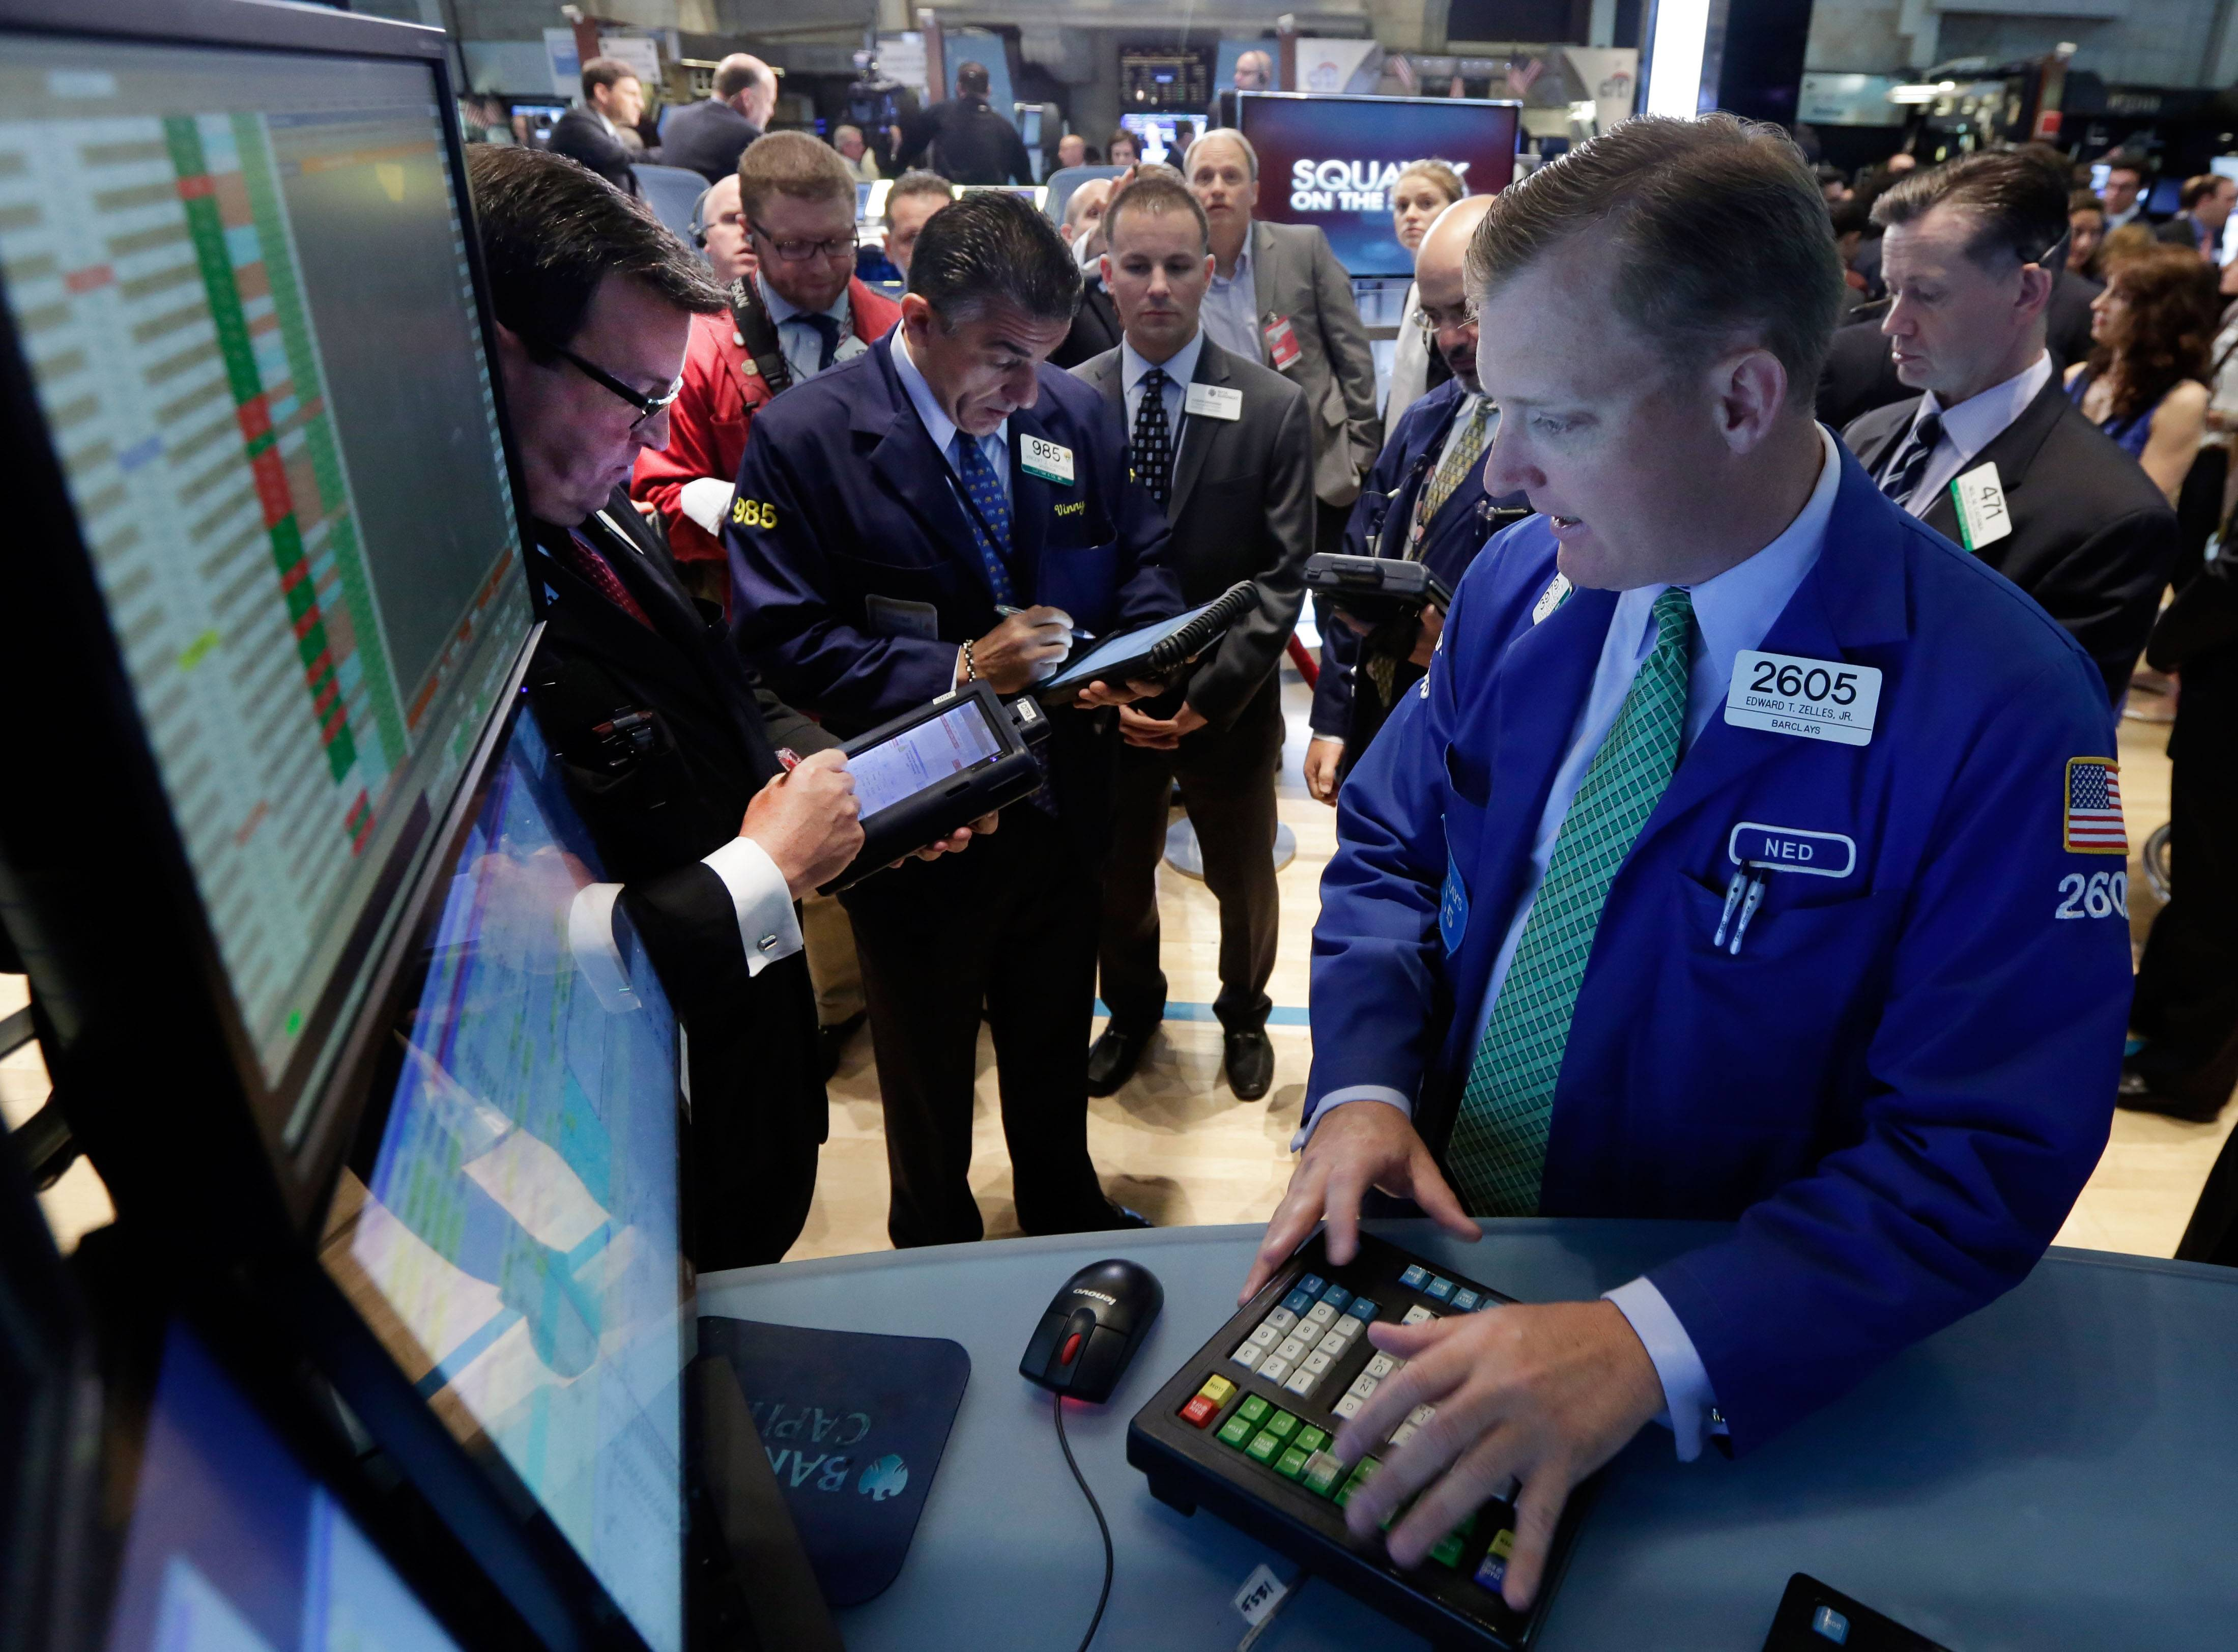 Stocks closed mostly higher on a quiet Monday following two reports that showed the manufacturing industries of the world's two largest economies expanded last month. Both the Dow Jones industrial average and the Standard & Poor's 500 index were able to set record highs for a second trading day in a row.